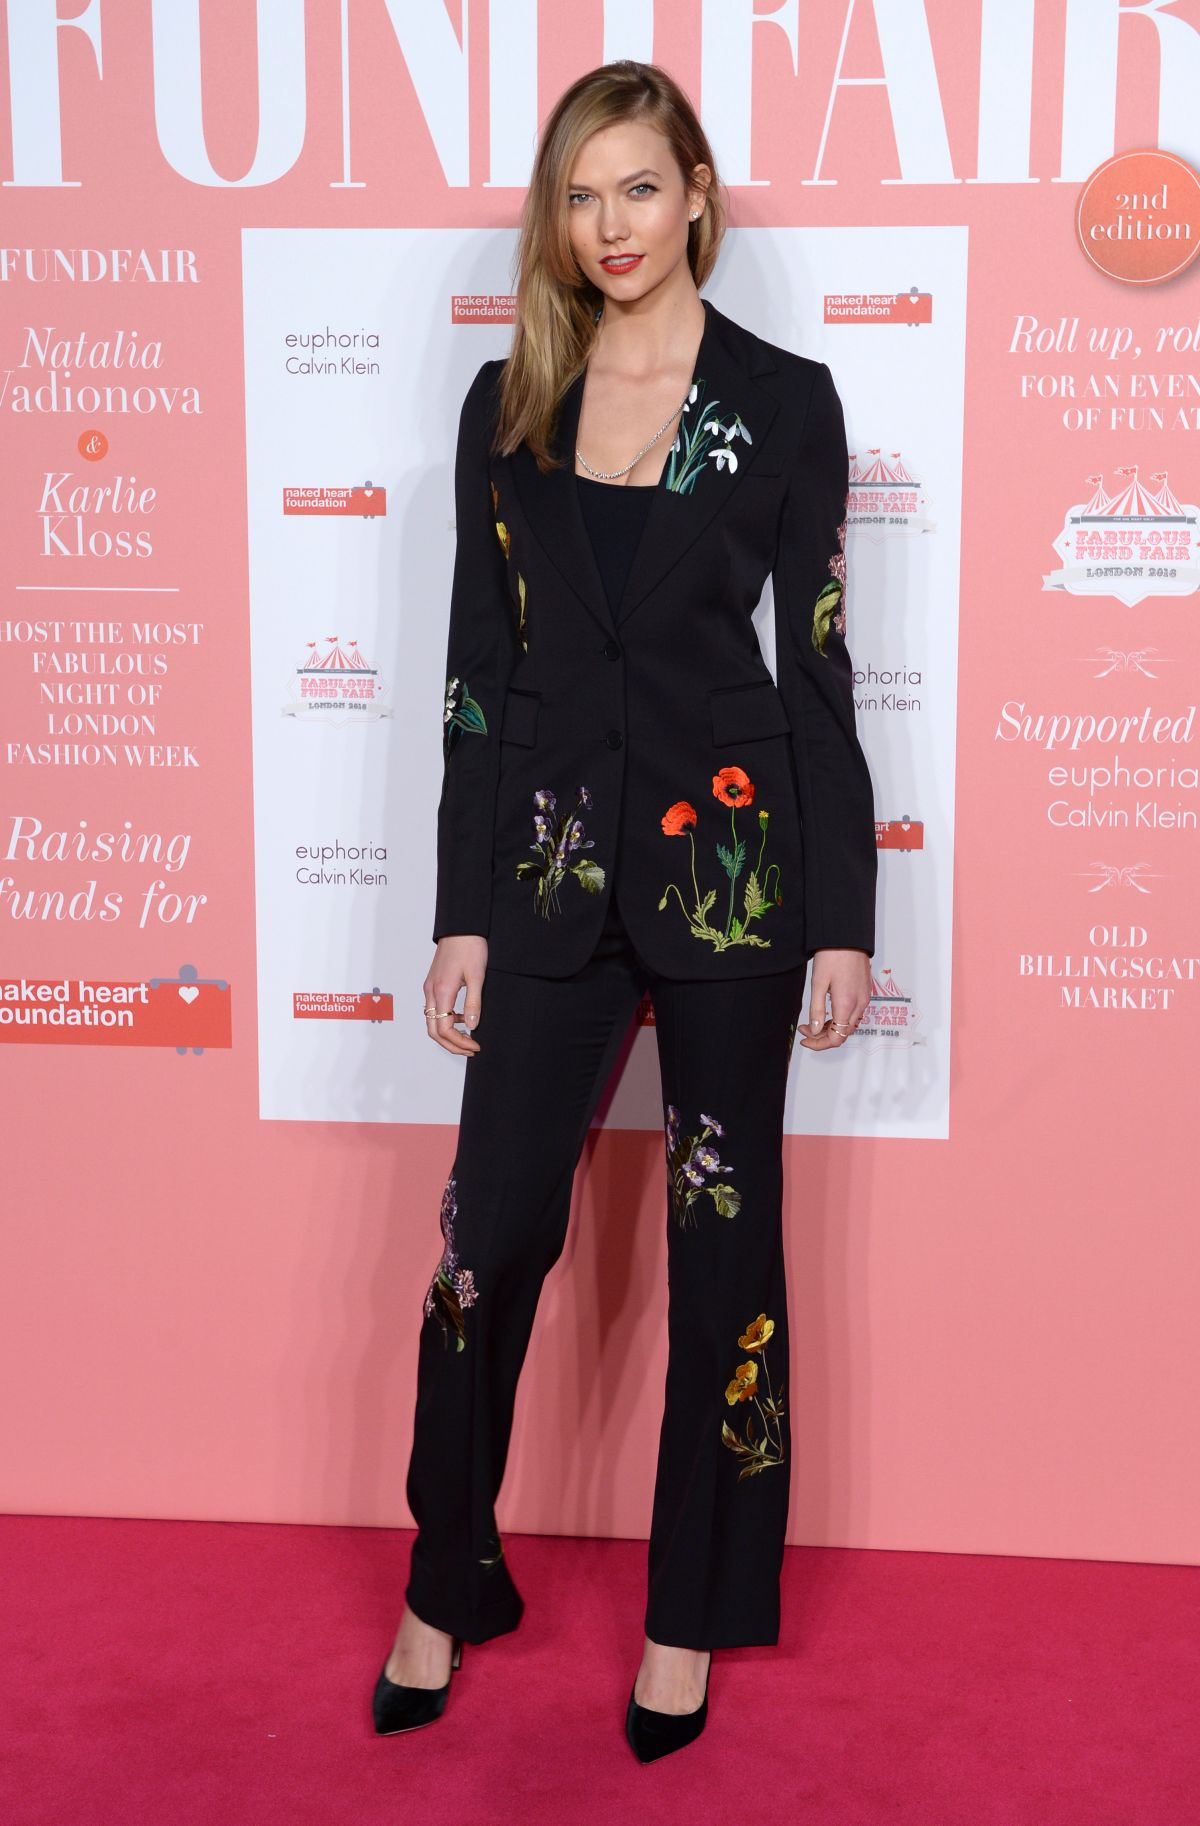 KARLIE KLOSS at Naked Heart Foundation's Fabulous Fund Fair in London 02/20/2016